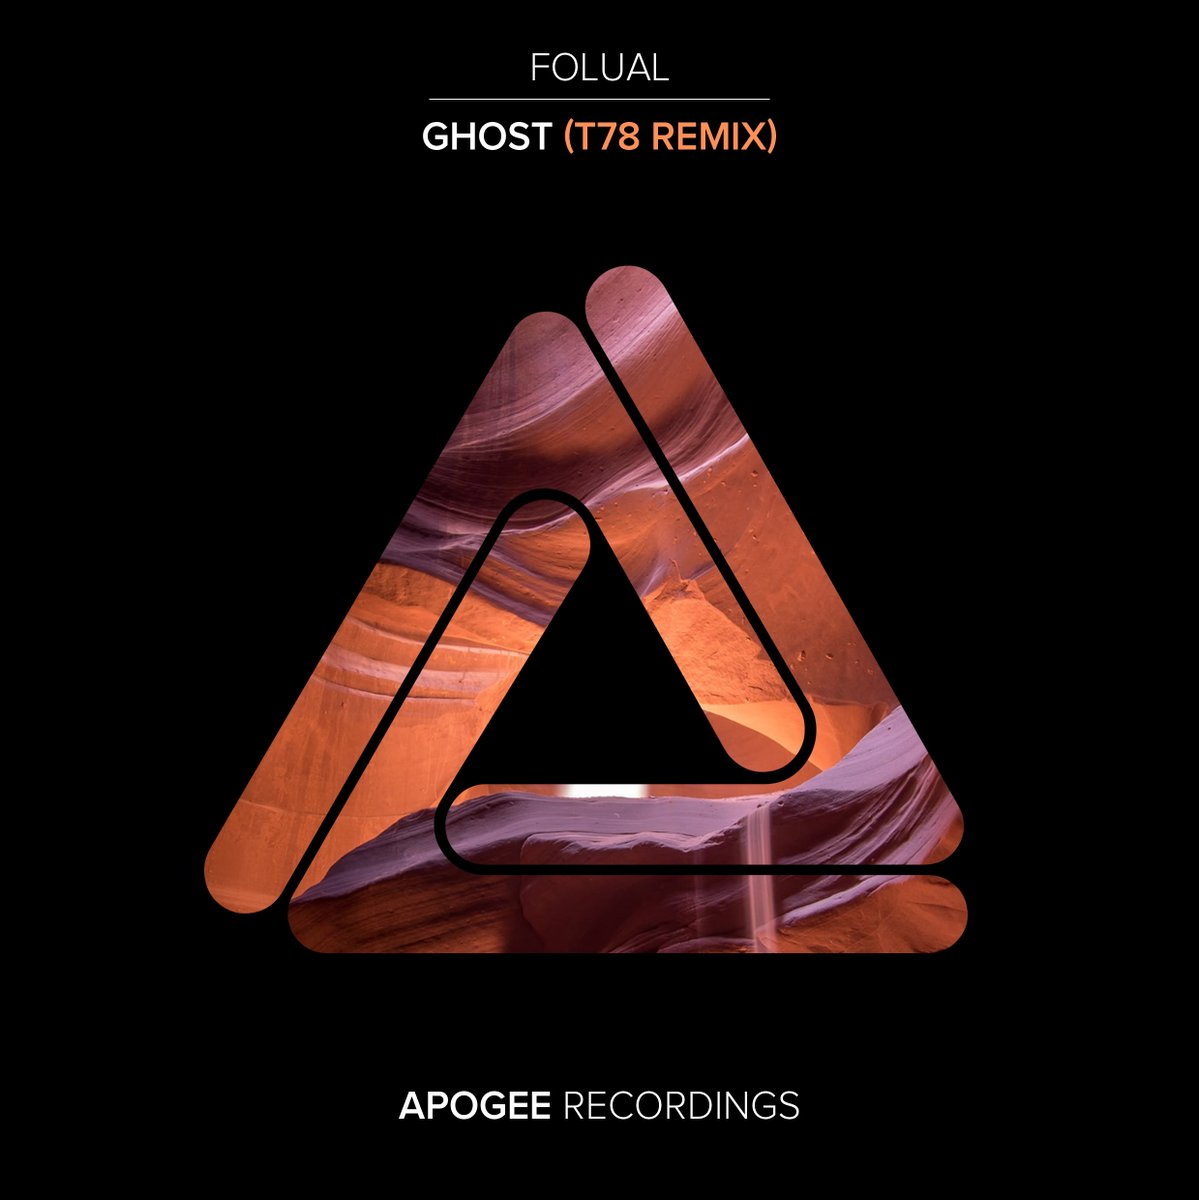 Up next on @apogee_Italy  fellow Italian and label friend @T78Autektone applies his magic to our recent track Ghost and takes it into another dimension. Coming soon, support already from @OCandVerde @djdaveangel @TOCADISCO and DJ T. @BlackHoleDist @YourArmy @beatport #onlybombspic.twitter.com/QALTM0lJyj